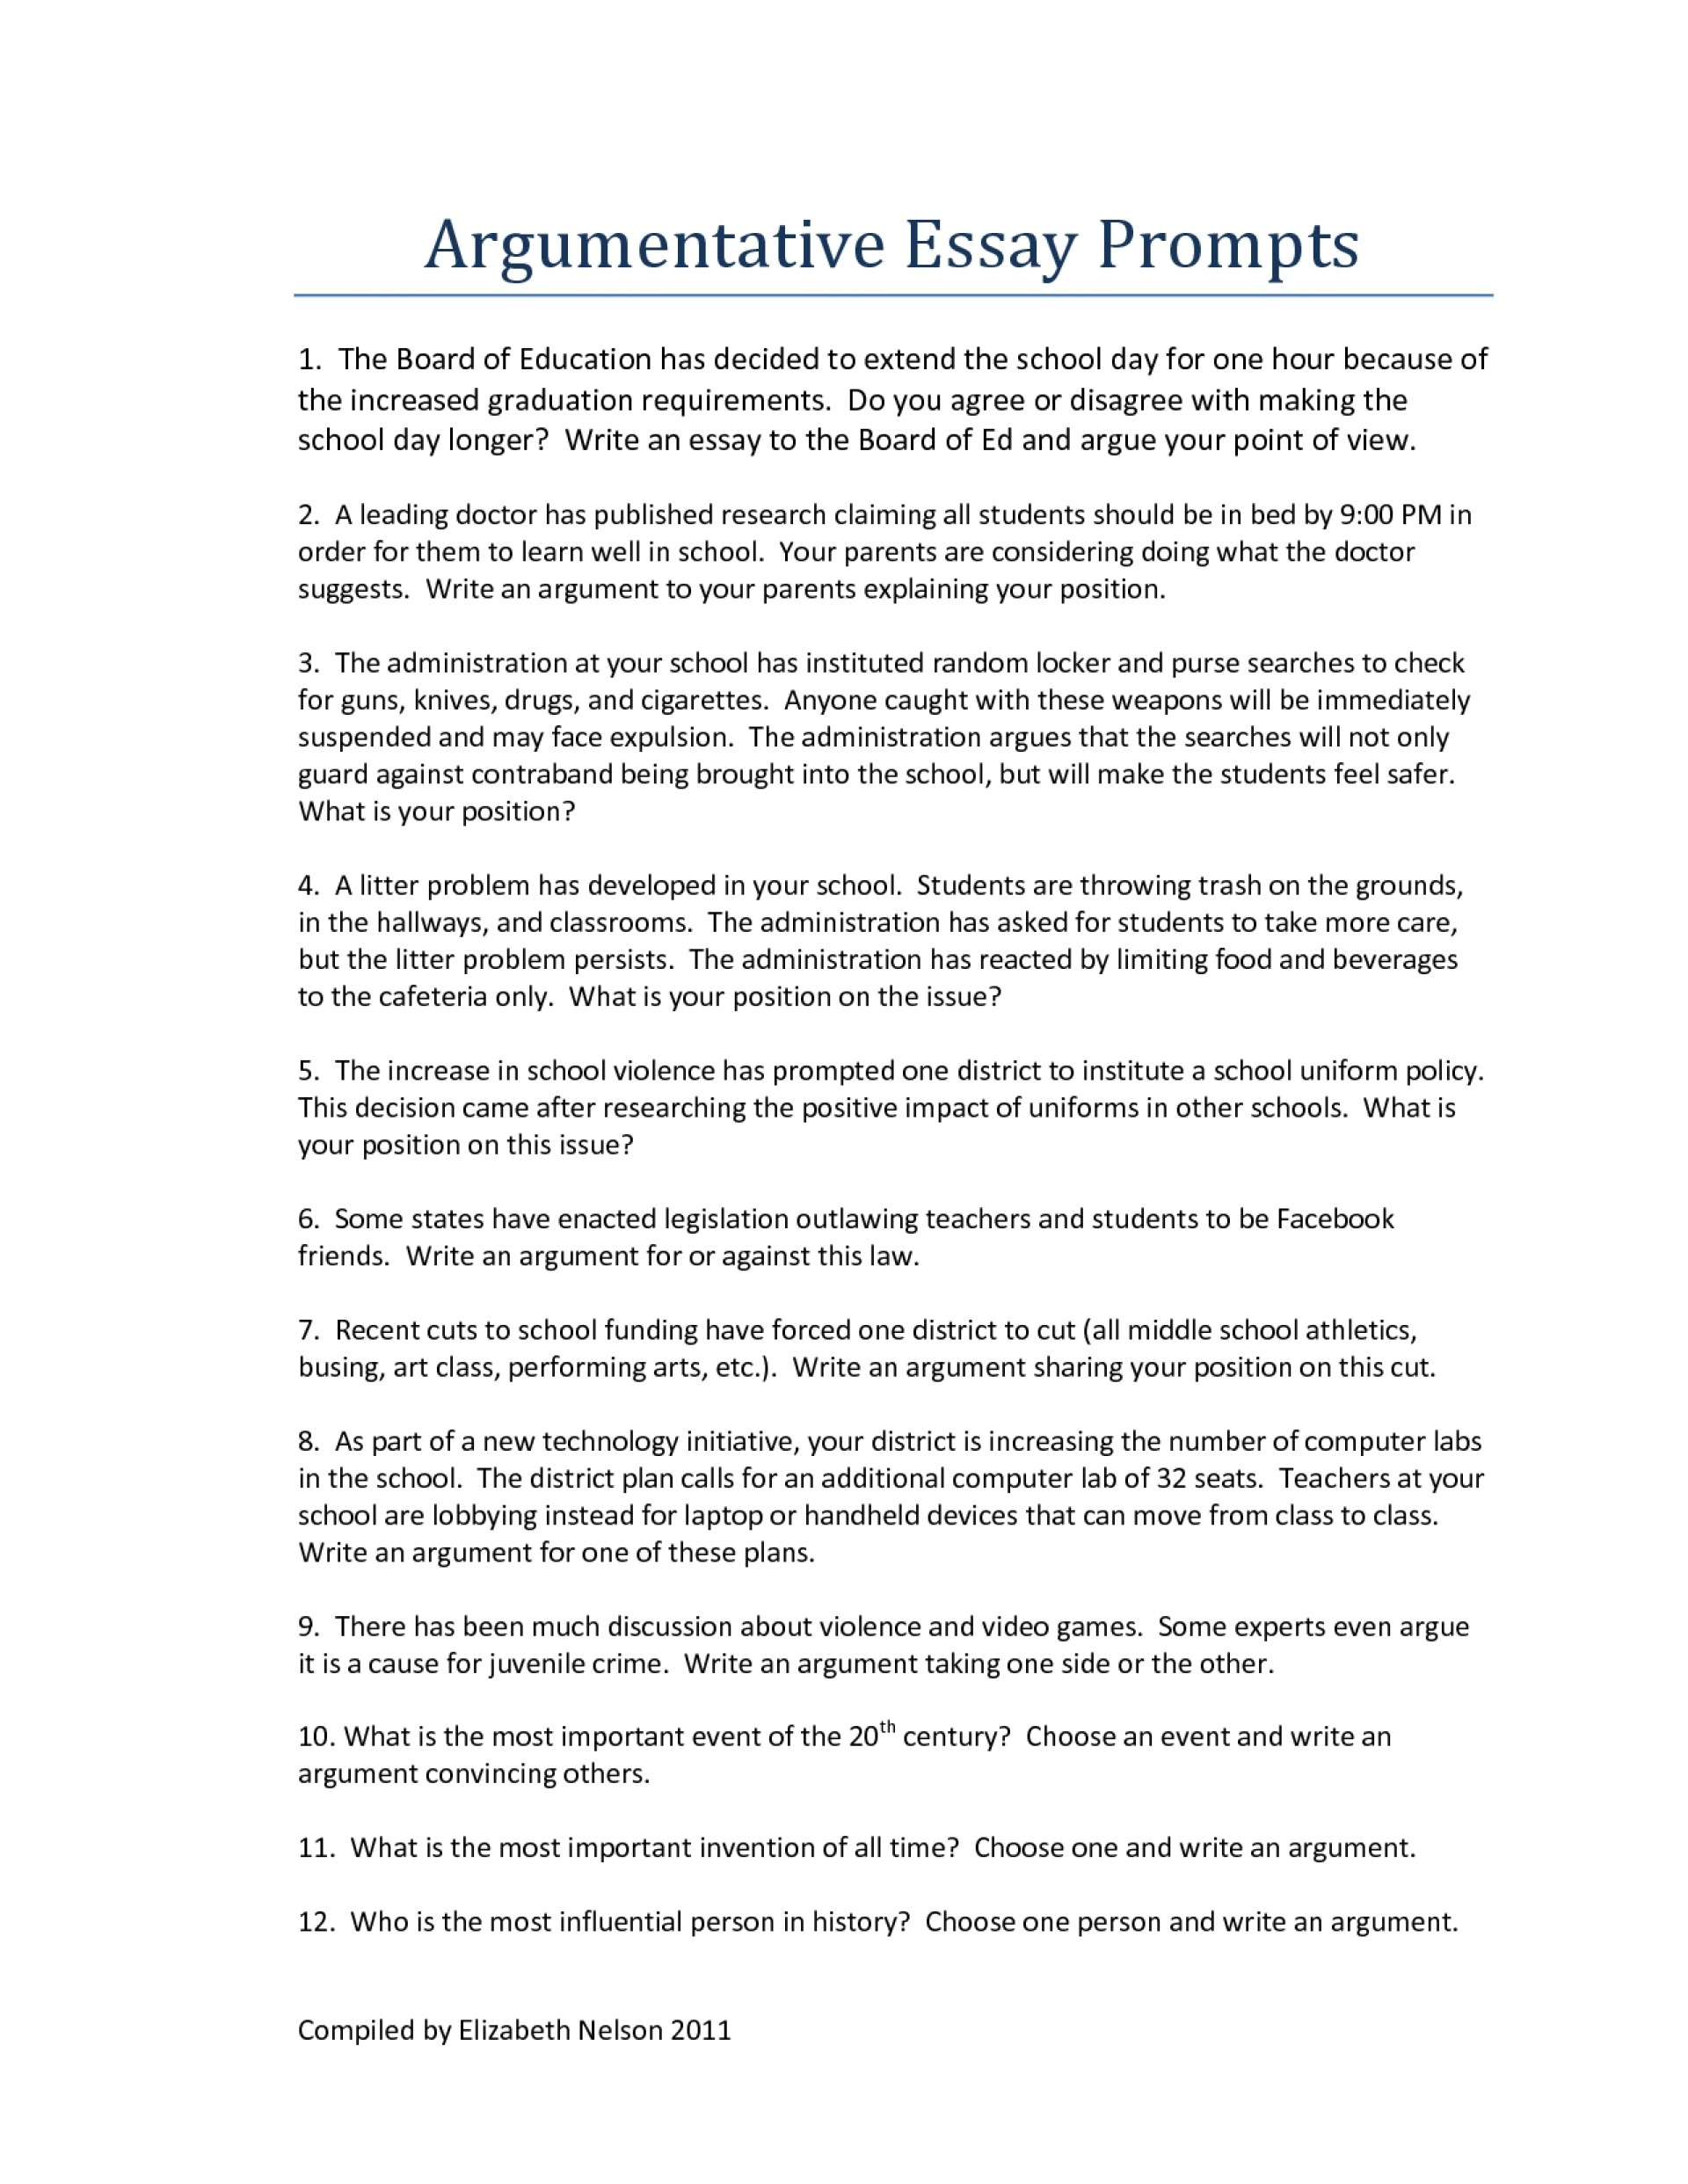 006 Persuasive Essay Topics For Middle School Argumentative Writings And Essays Easy Good High Argument Higher English 6th Grade Kids Pdf College About Imposing Speech Students Interest Prompts 1920